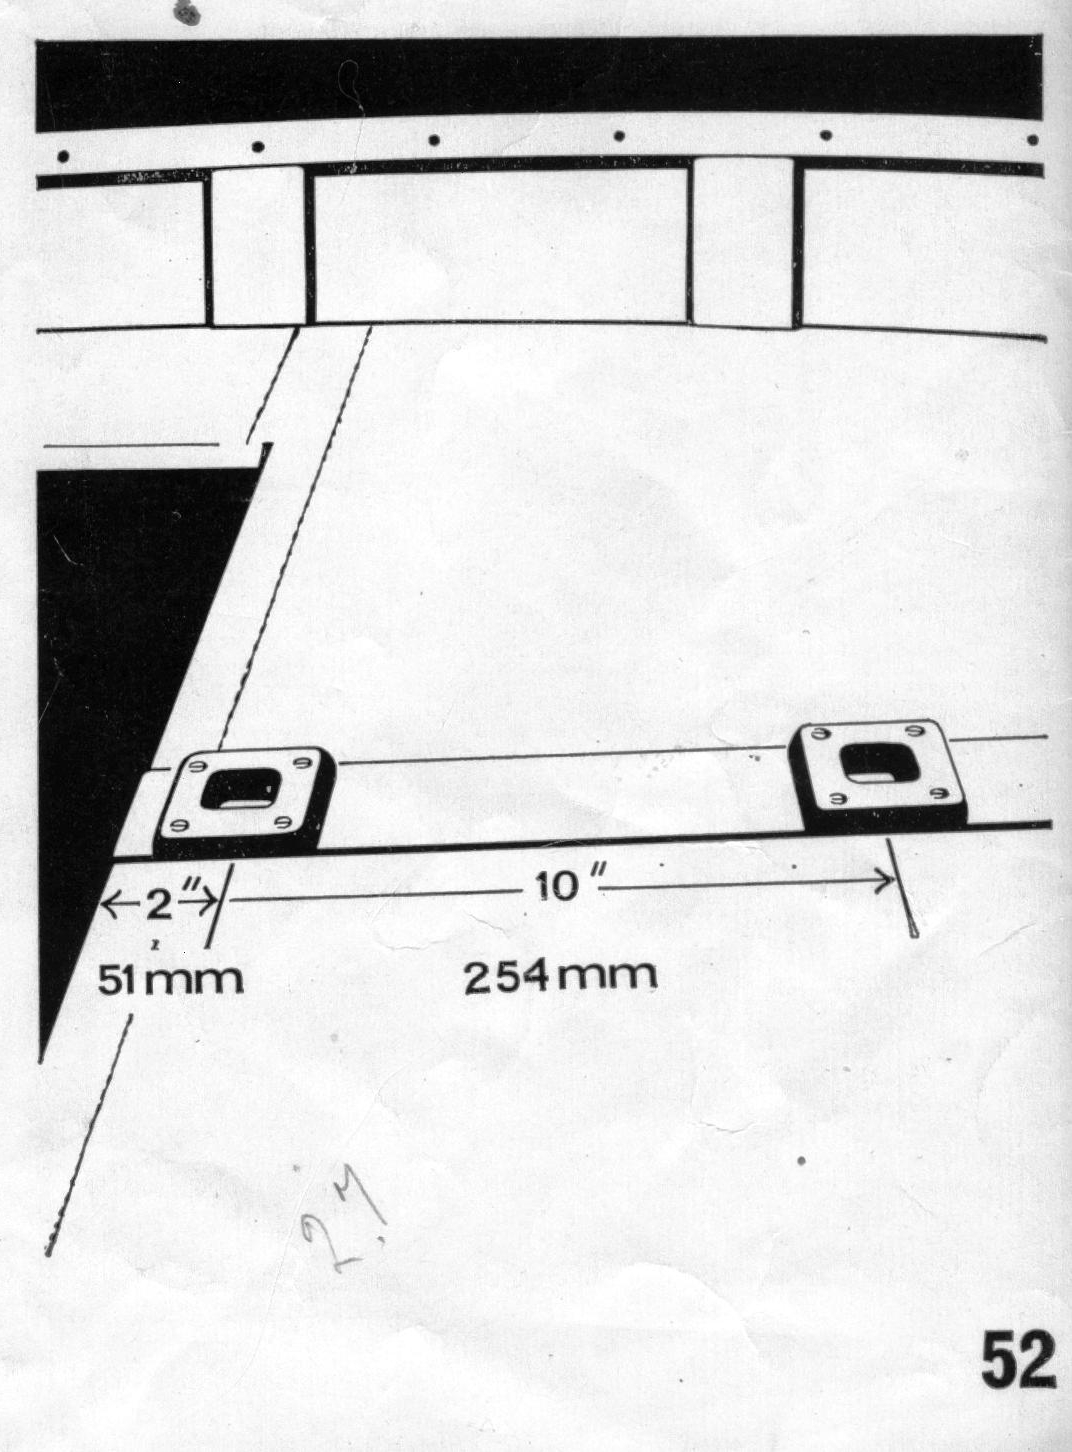 hight resolution of plate 52 from the original bell woodworking building instructions